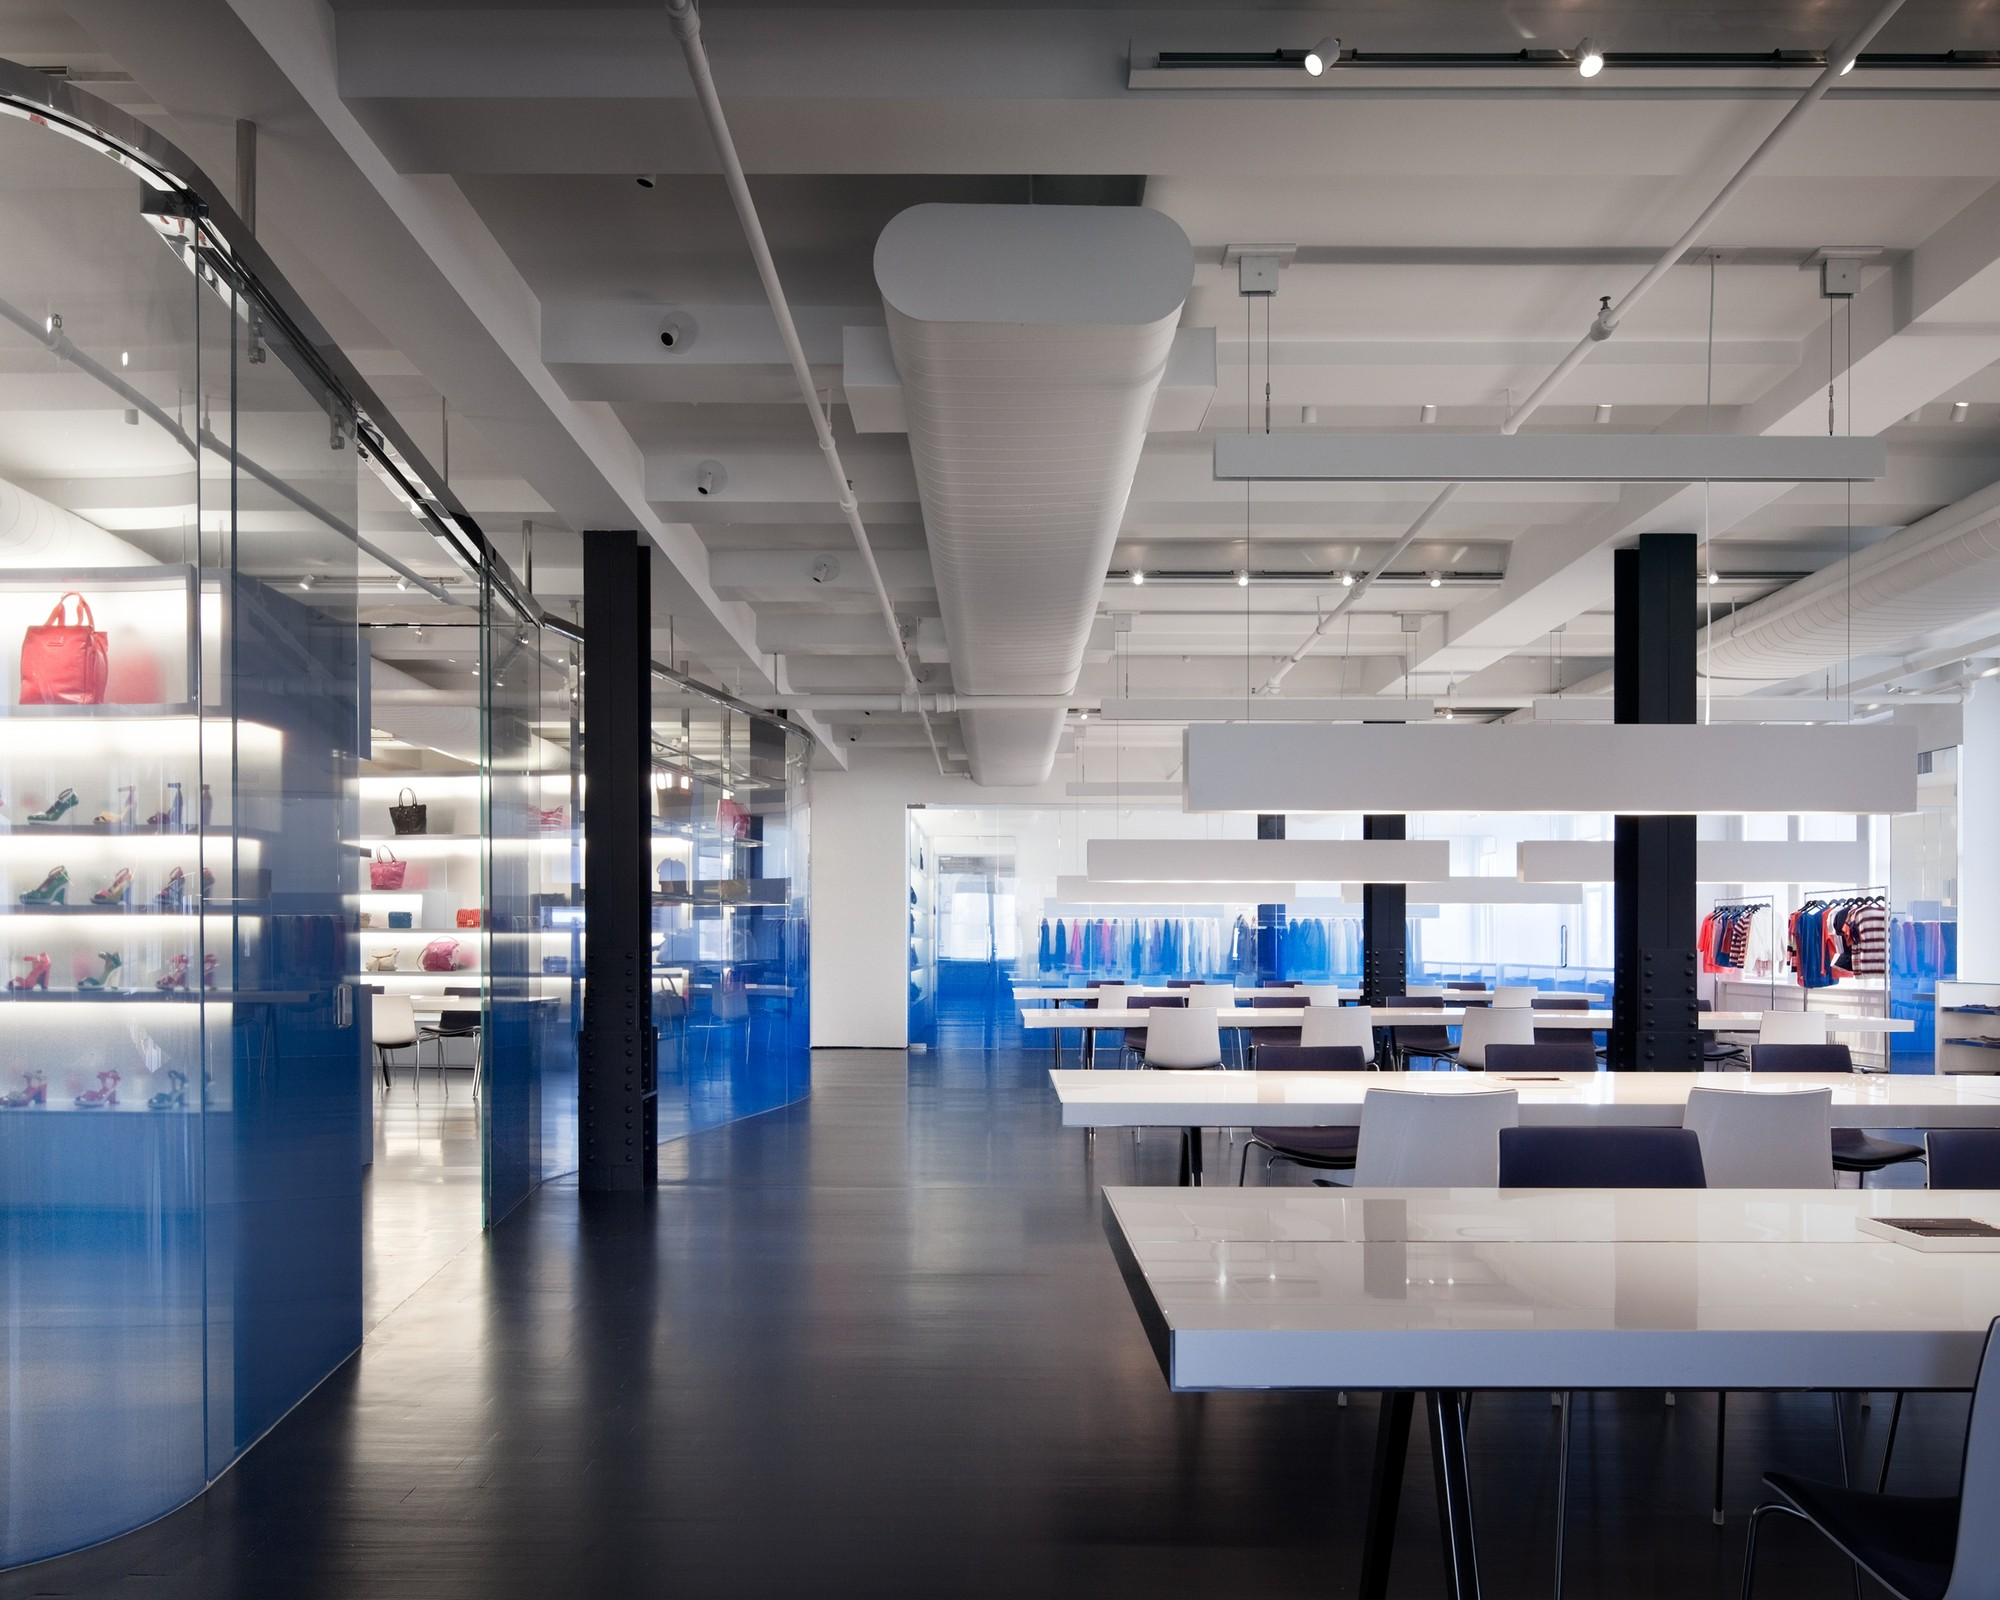 Gallery of 2014 aia institute honor awards for interior for J j school of architecture